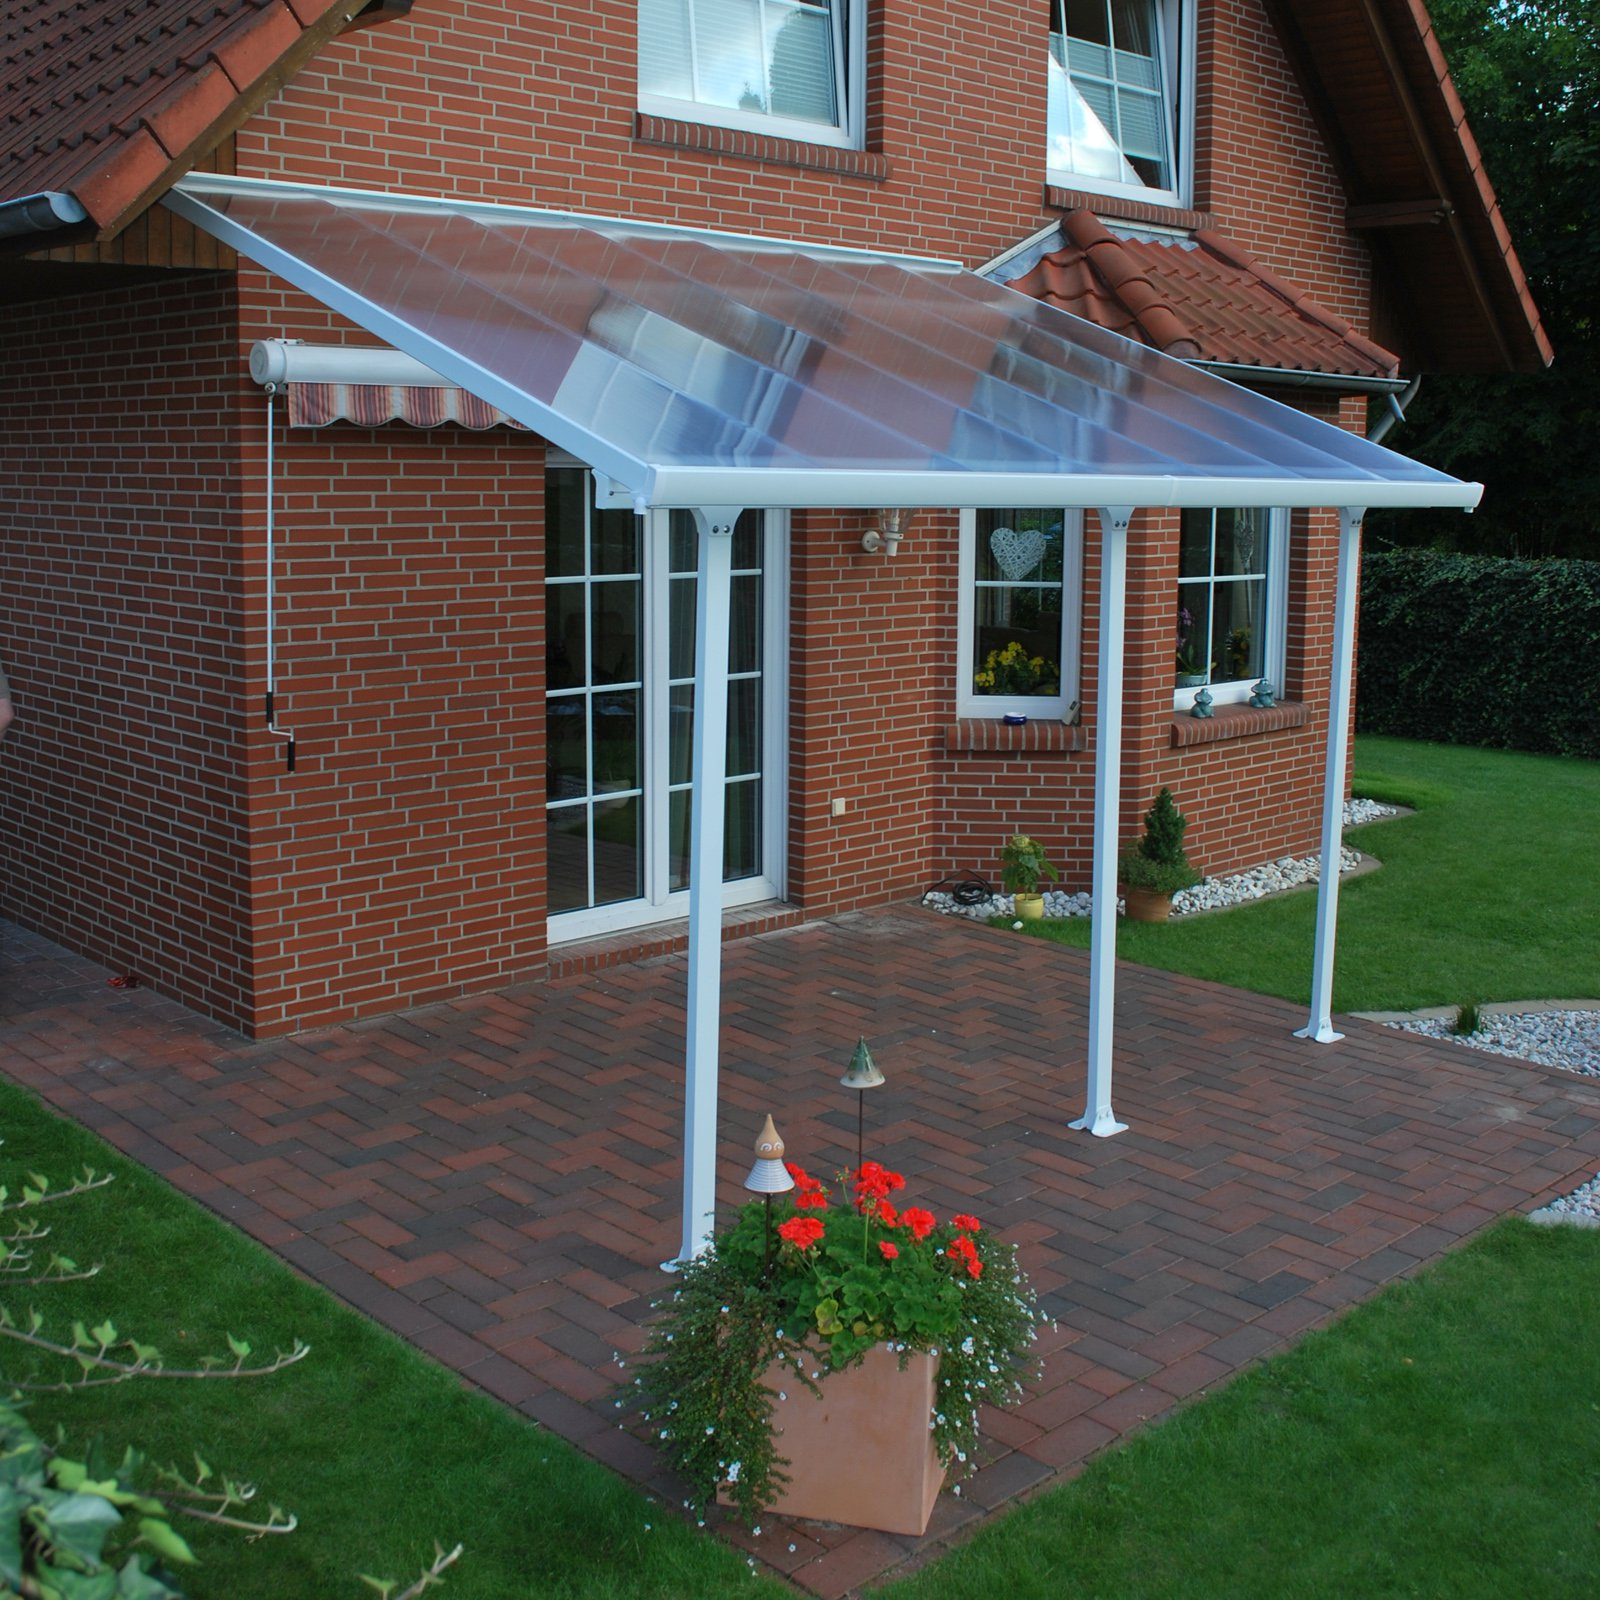 Exceptional Palram Feria Patio Cover 13 X 6 Ft. Extension Kit